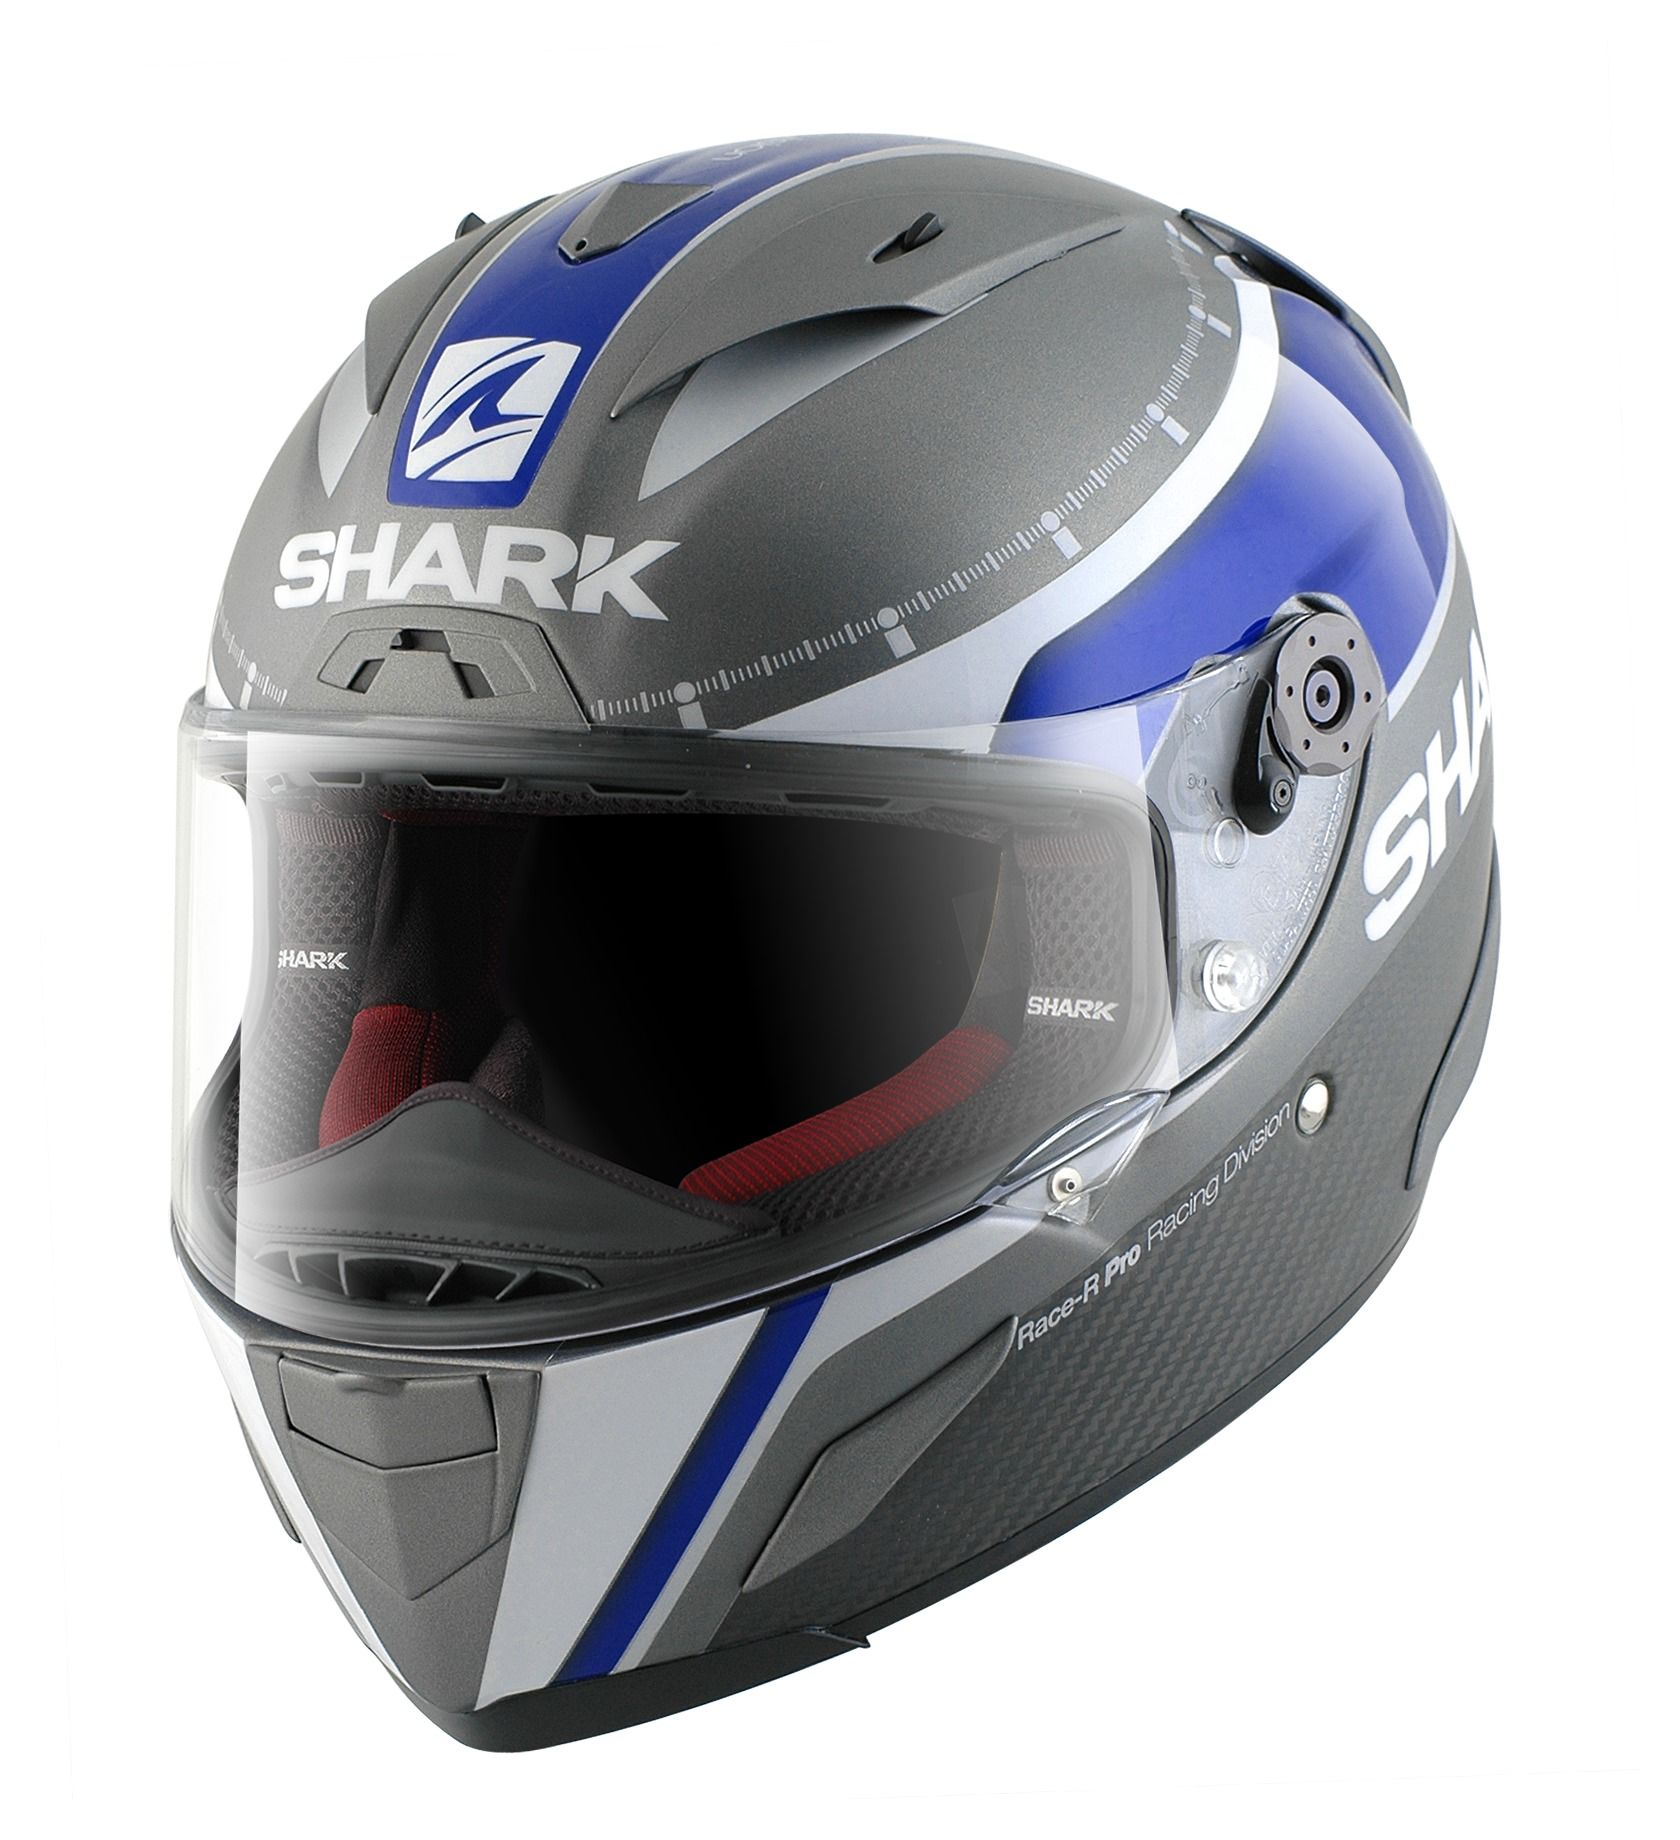 shark race r pro carbon race helmet size xs only 45 off revzilla. Black Bedroom Furniture Sets. Home Design Ideas